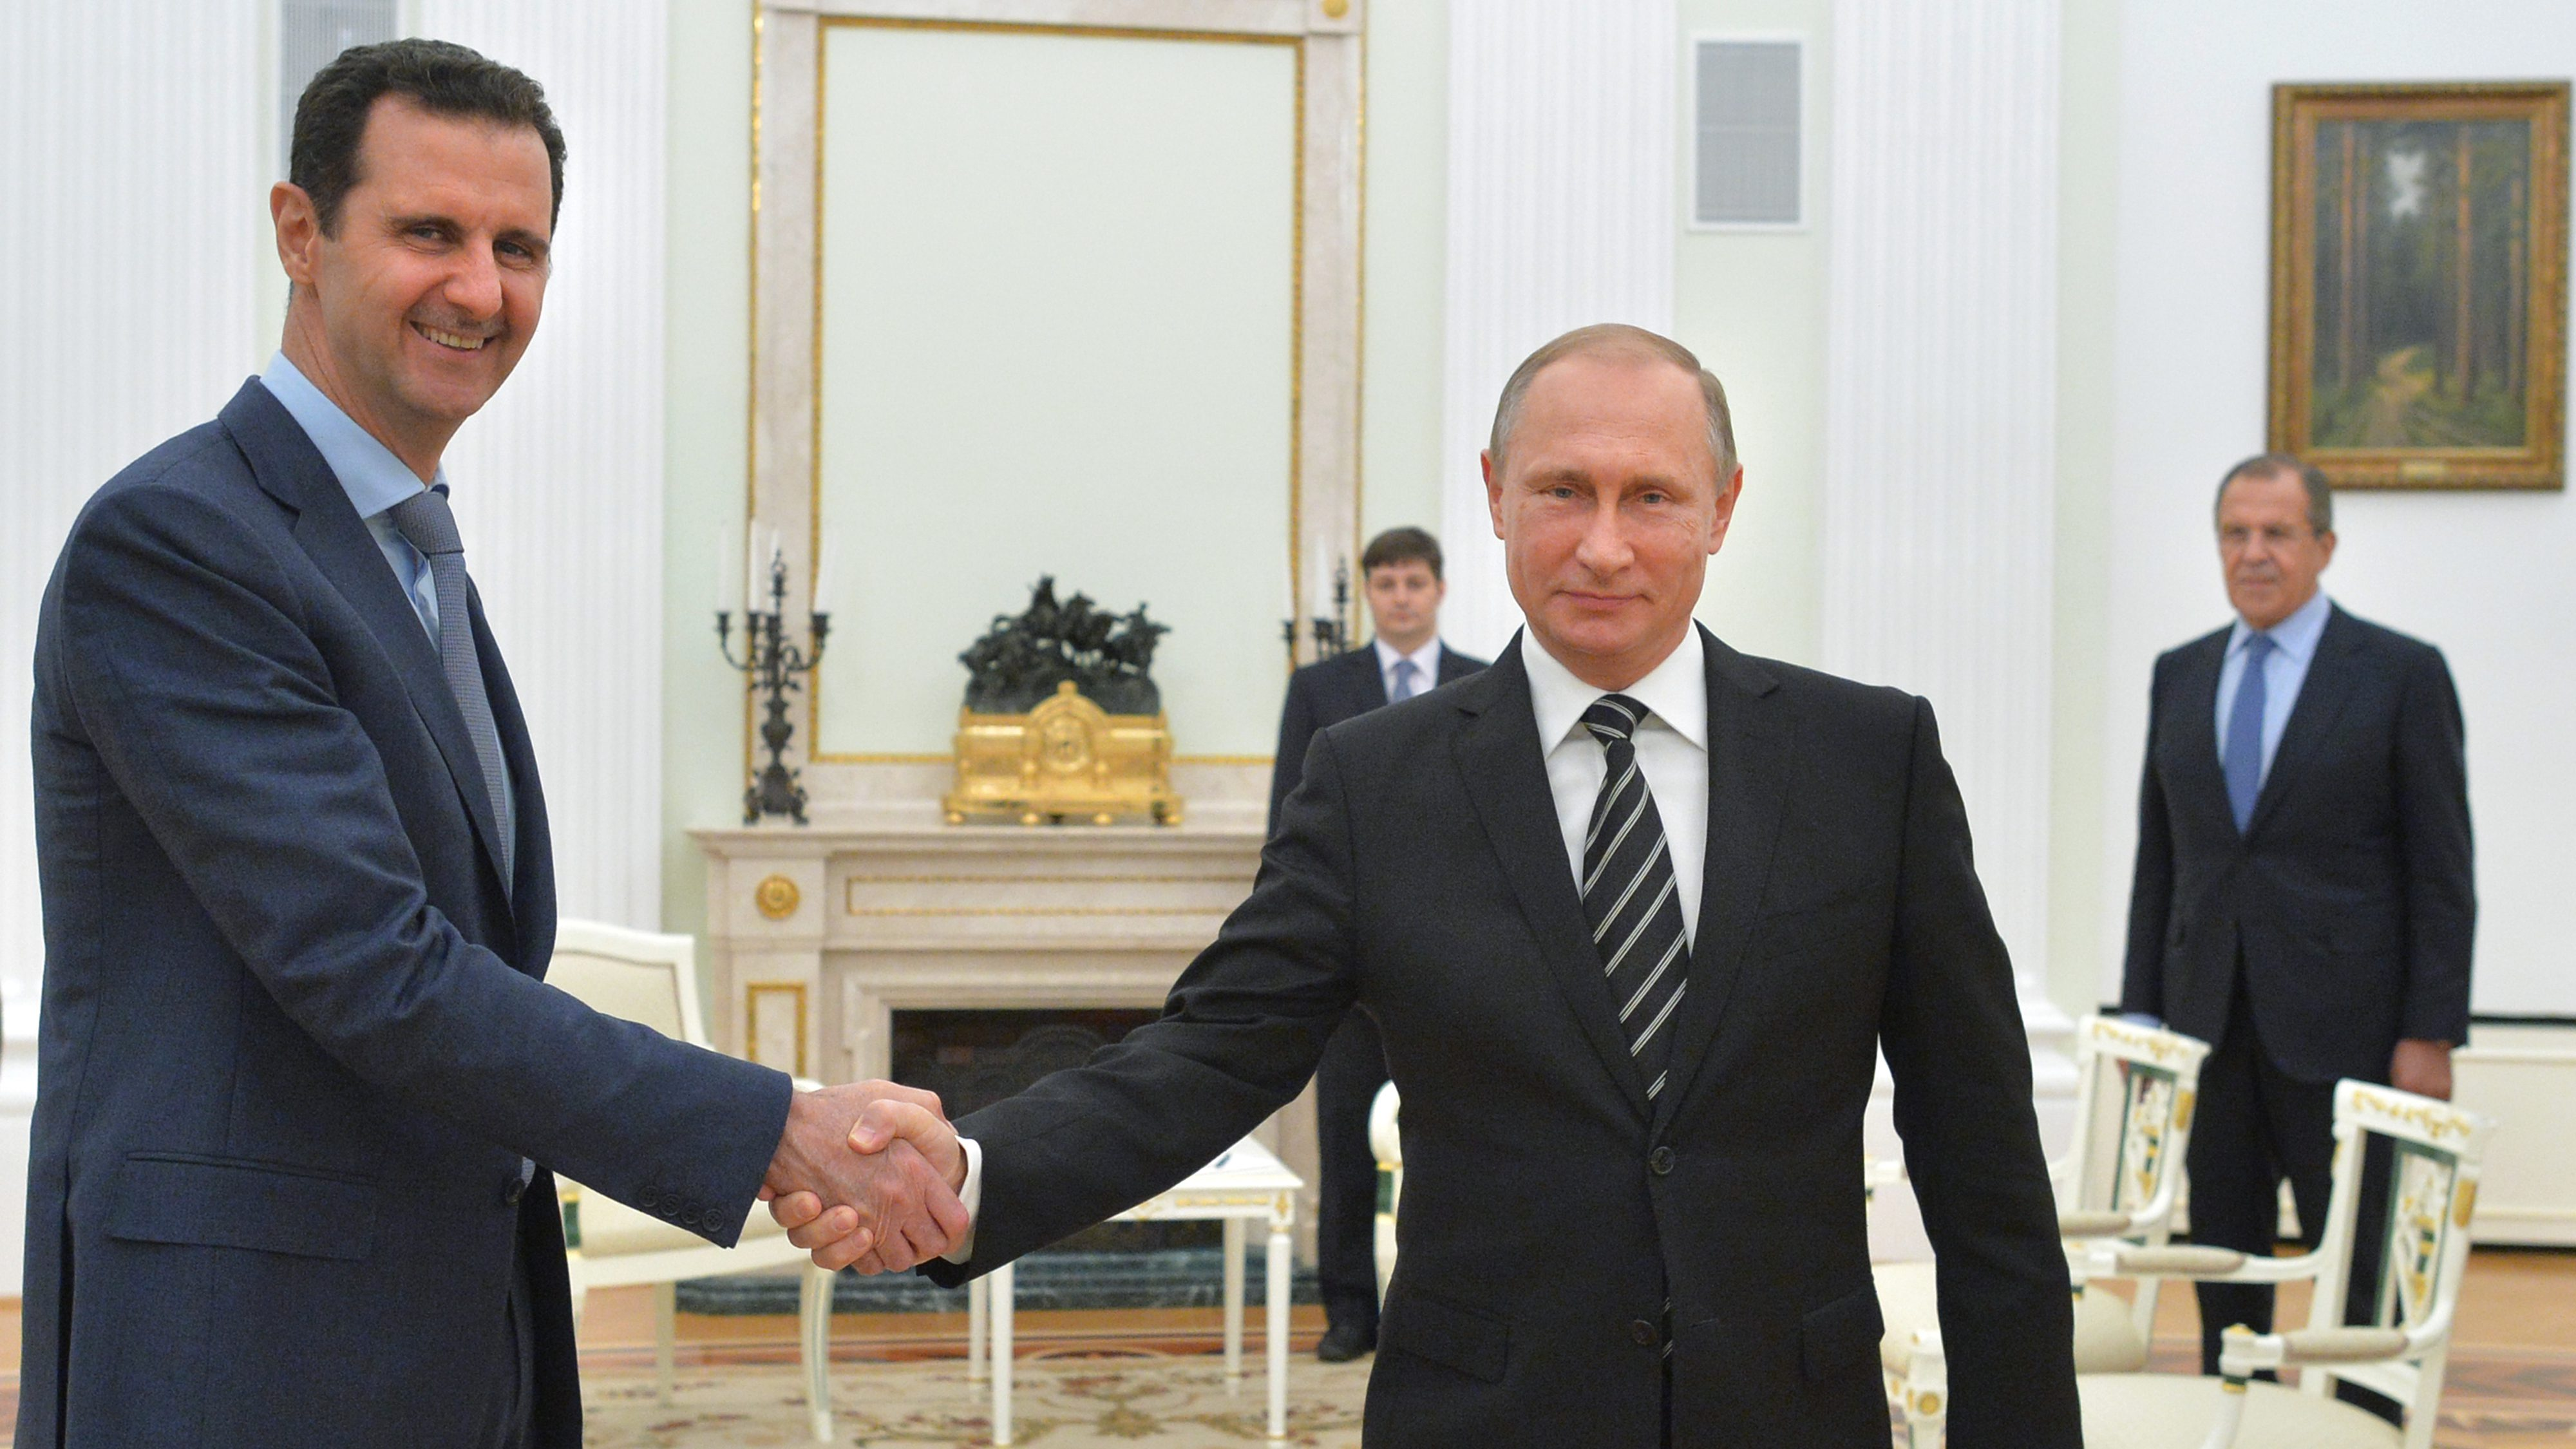 FILE - In this Oct. 20, 2015 file photo, Russian President Vladimir Putin, center, shakes hand with Syrian President Bashar Assad as Russian Foreign Minister Sergey Lavrov, right, looks on, at the Kremlin, in Moscow, Russia. For five years fighting has raged in Syria -- a globally resonant nightmare kept going in part by the insistence of Bashar Assad's opponents that he must go even though they were failing to dislodge him from power. Now an inflection point may finally be at hand, with increasingly important Turkey suggesting Assad could play a role in an unspecified transition period. (Alexei Druzhinin, RIA-Novosti, Kremlin Pool Photo via AP, File)